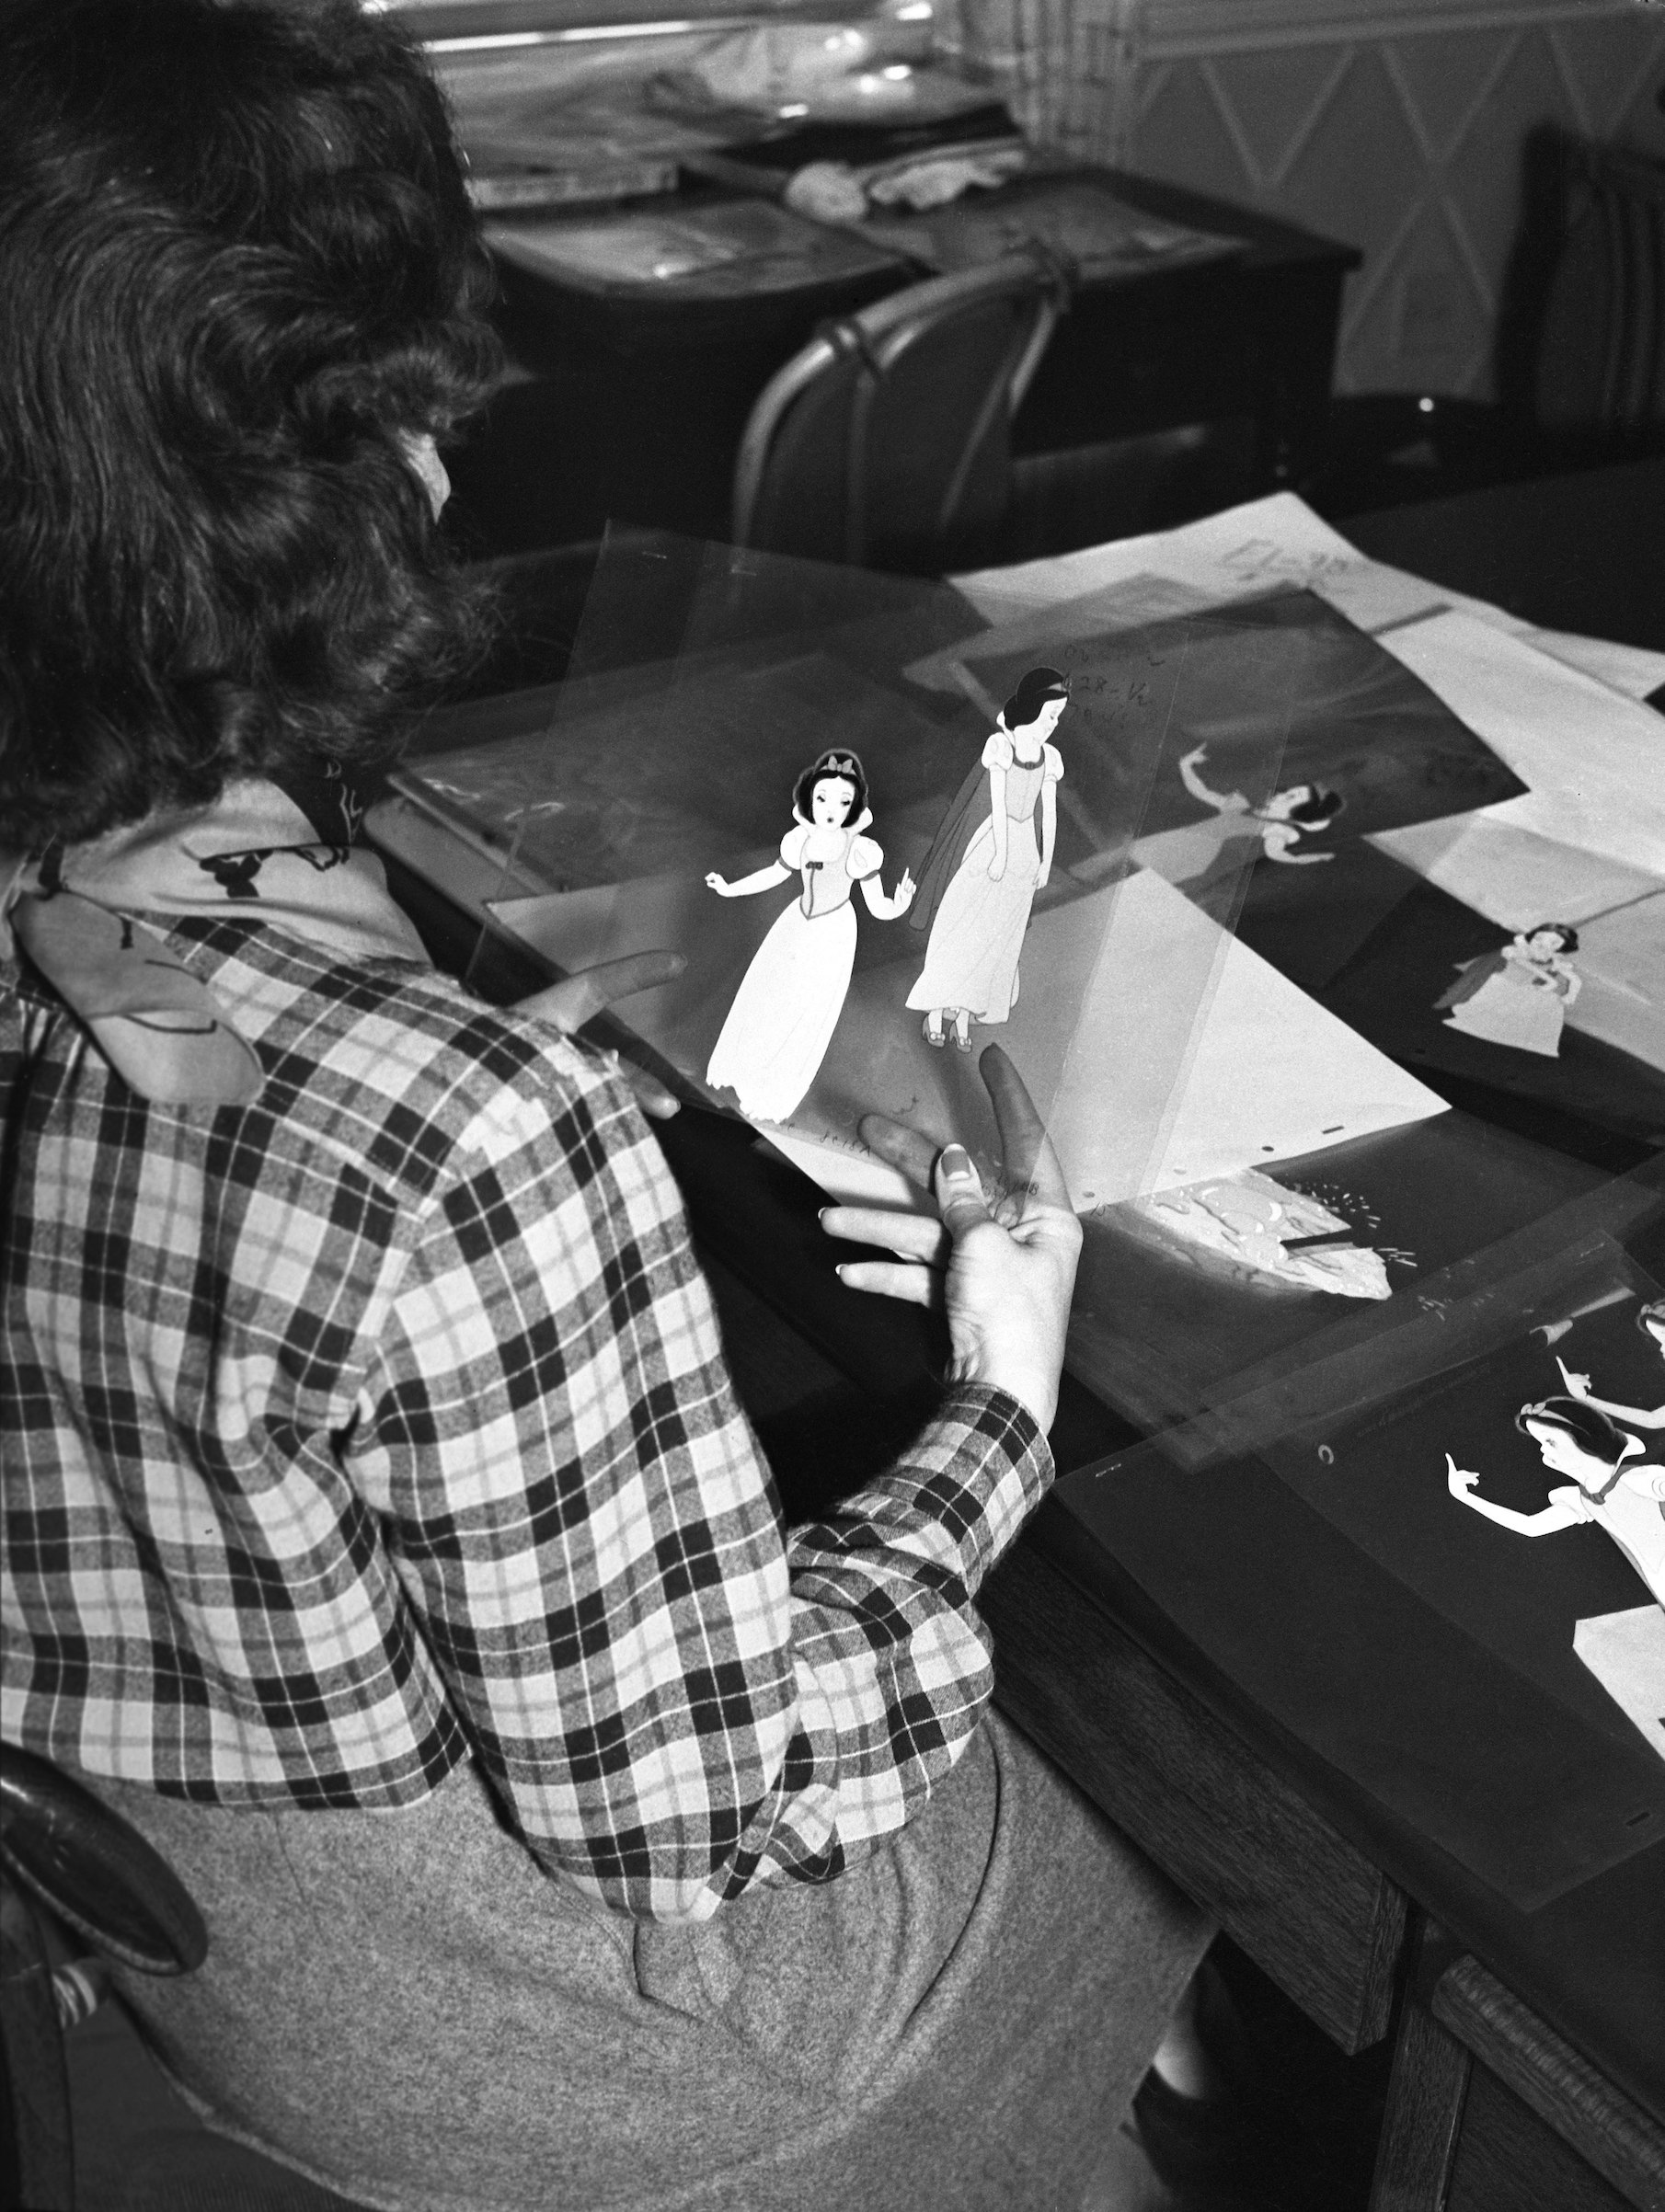 A Disney animator works on cells from the film 'Snow White' circa 1936 in Los Angeles, Calif.